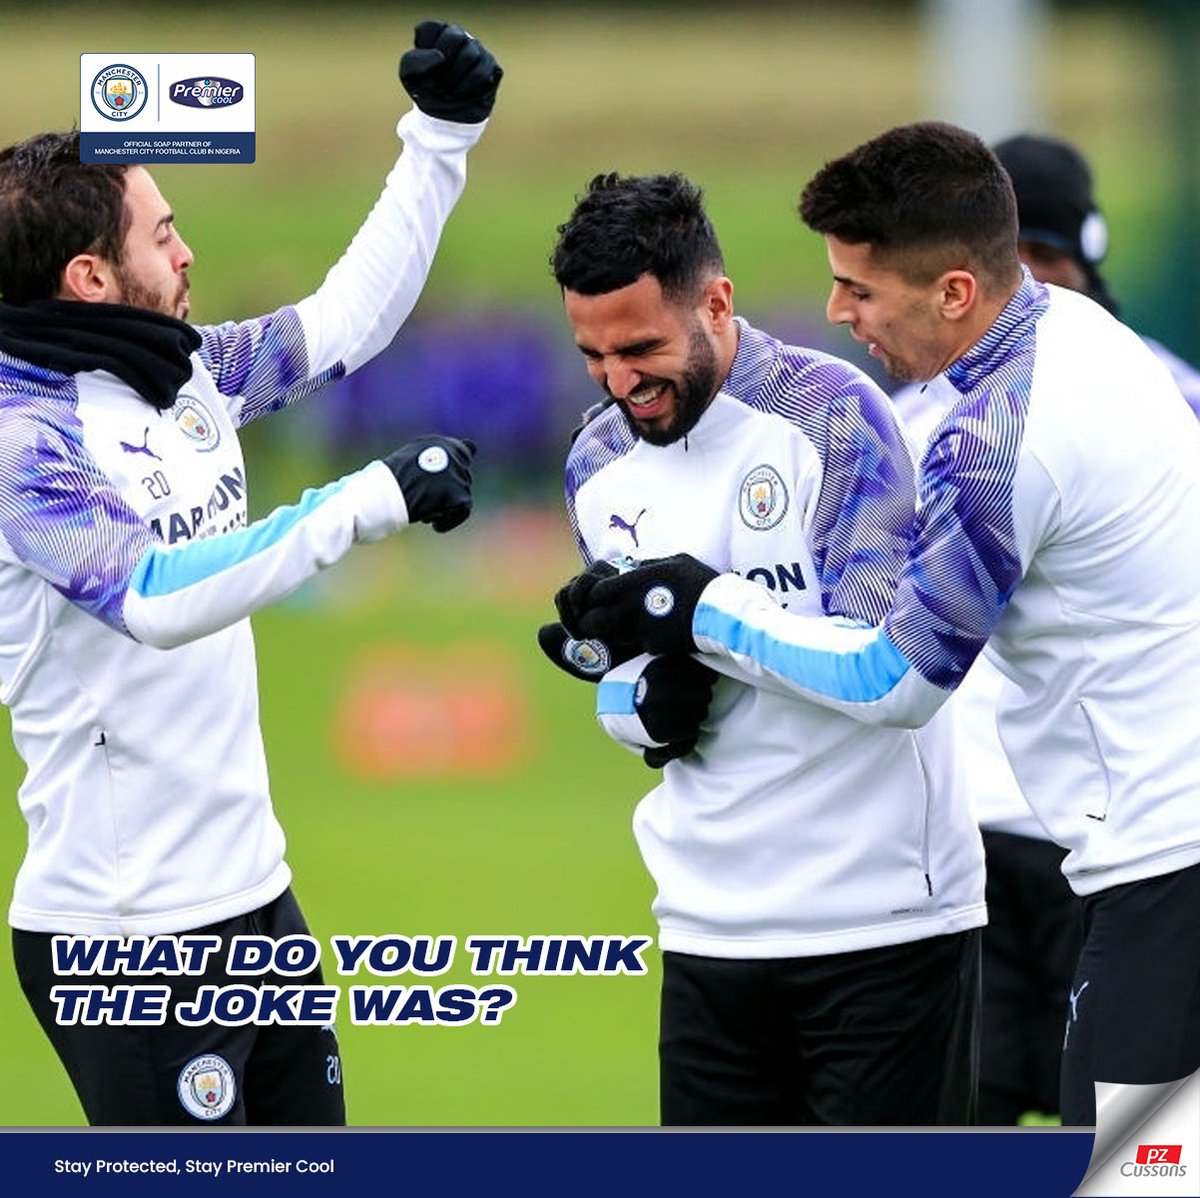 There's always a funny man in the group.  What do you think the joke was?   #PremierCool #MCFC #CoolSquad #StayCool #LoveConfidently #StayConfident #IcyFresh #Protection #StayProtected